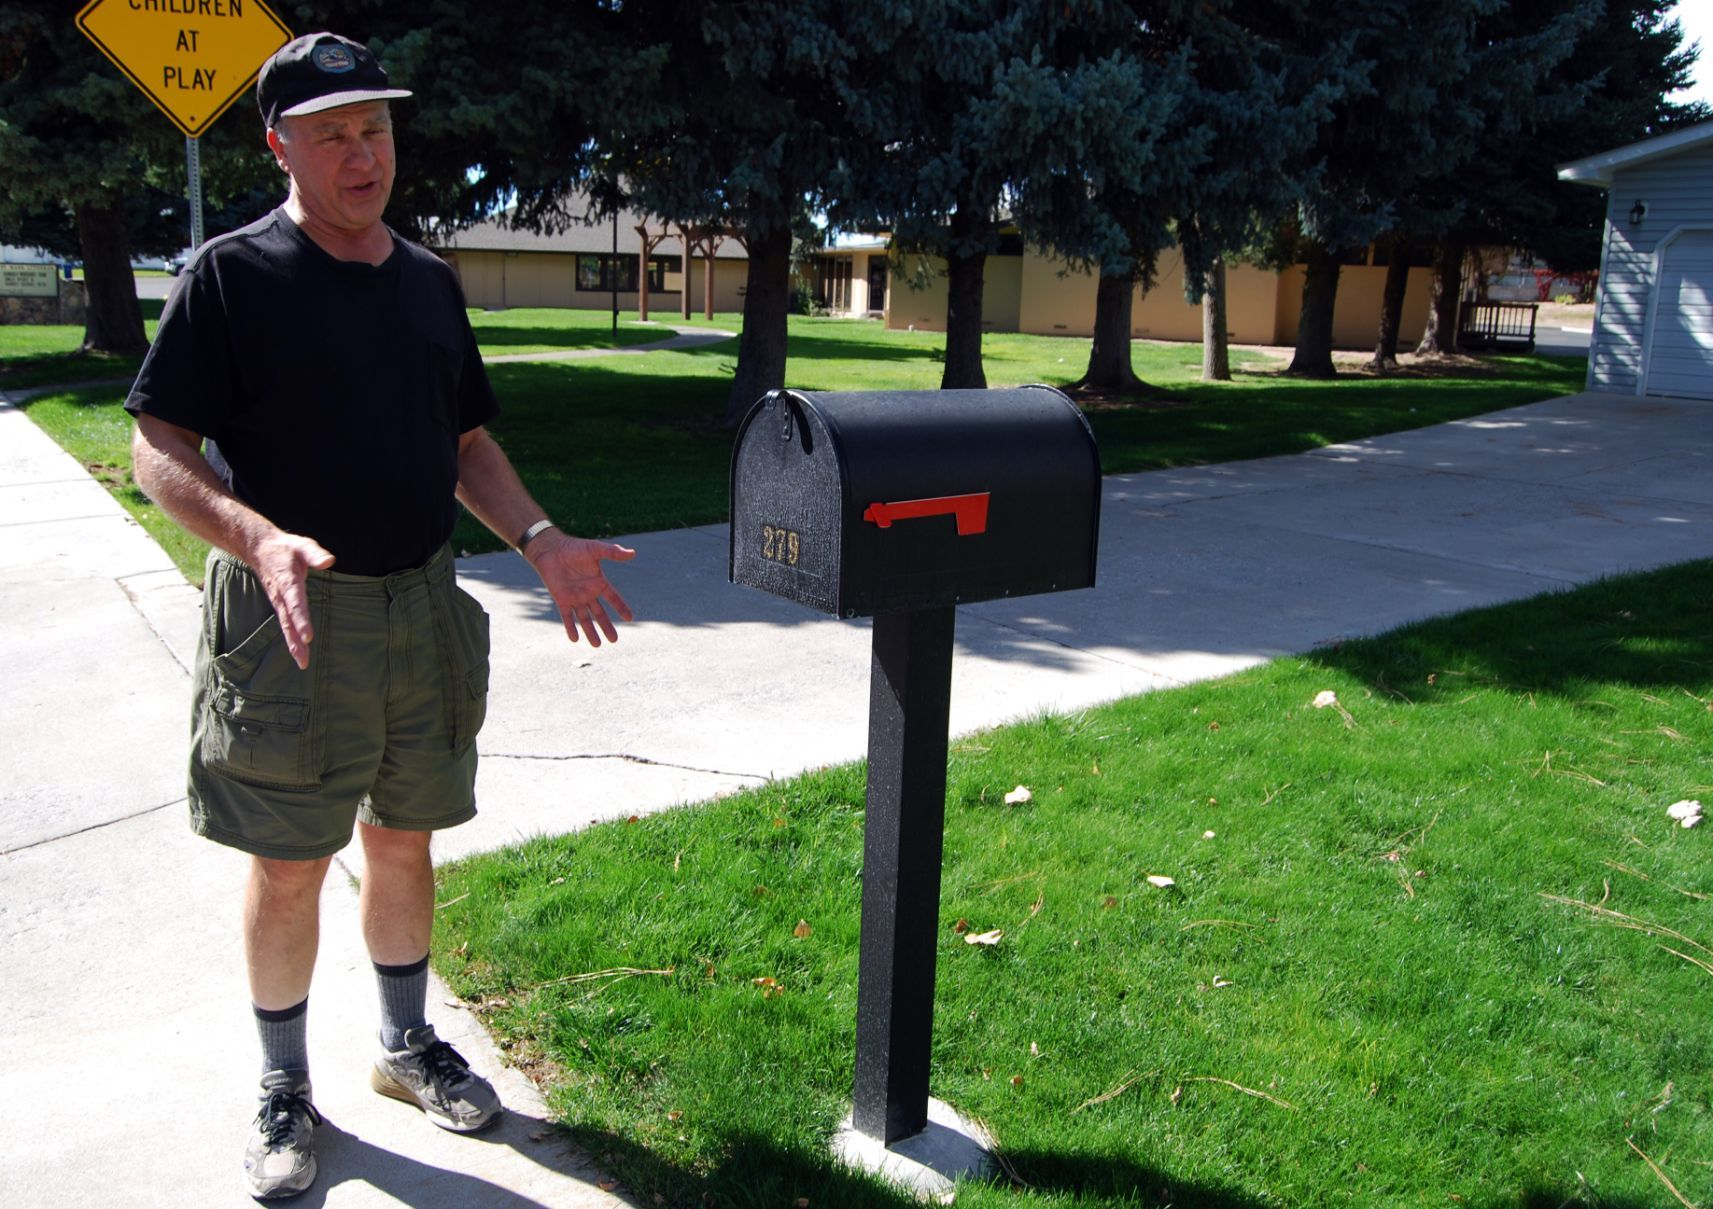 Post office removes mailbox location requirements | News ...